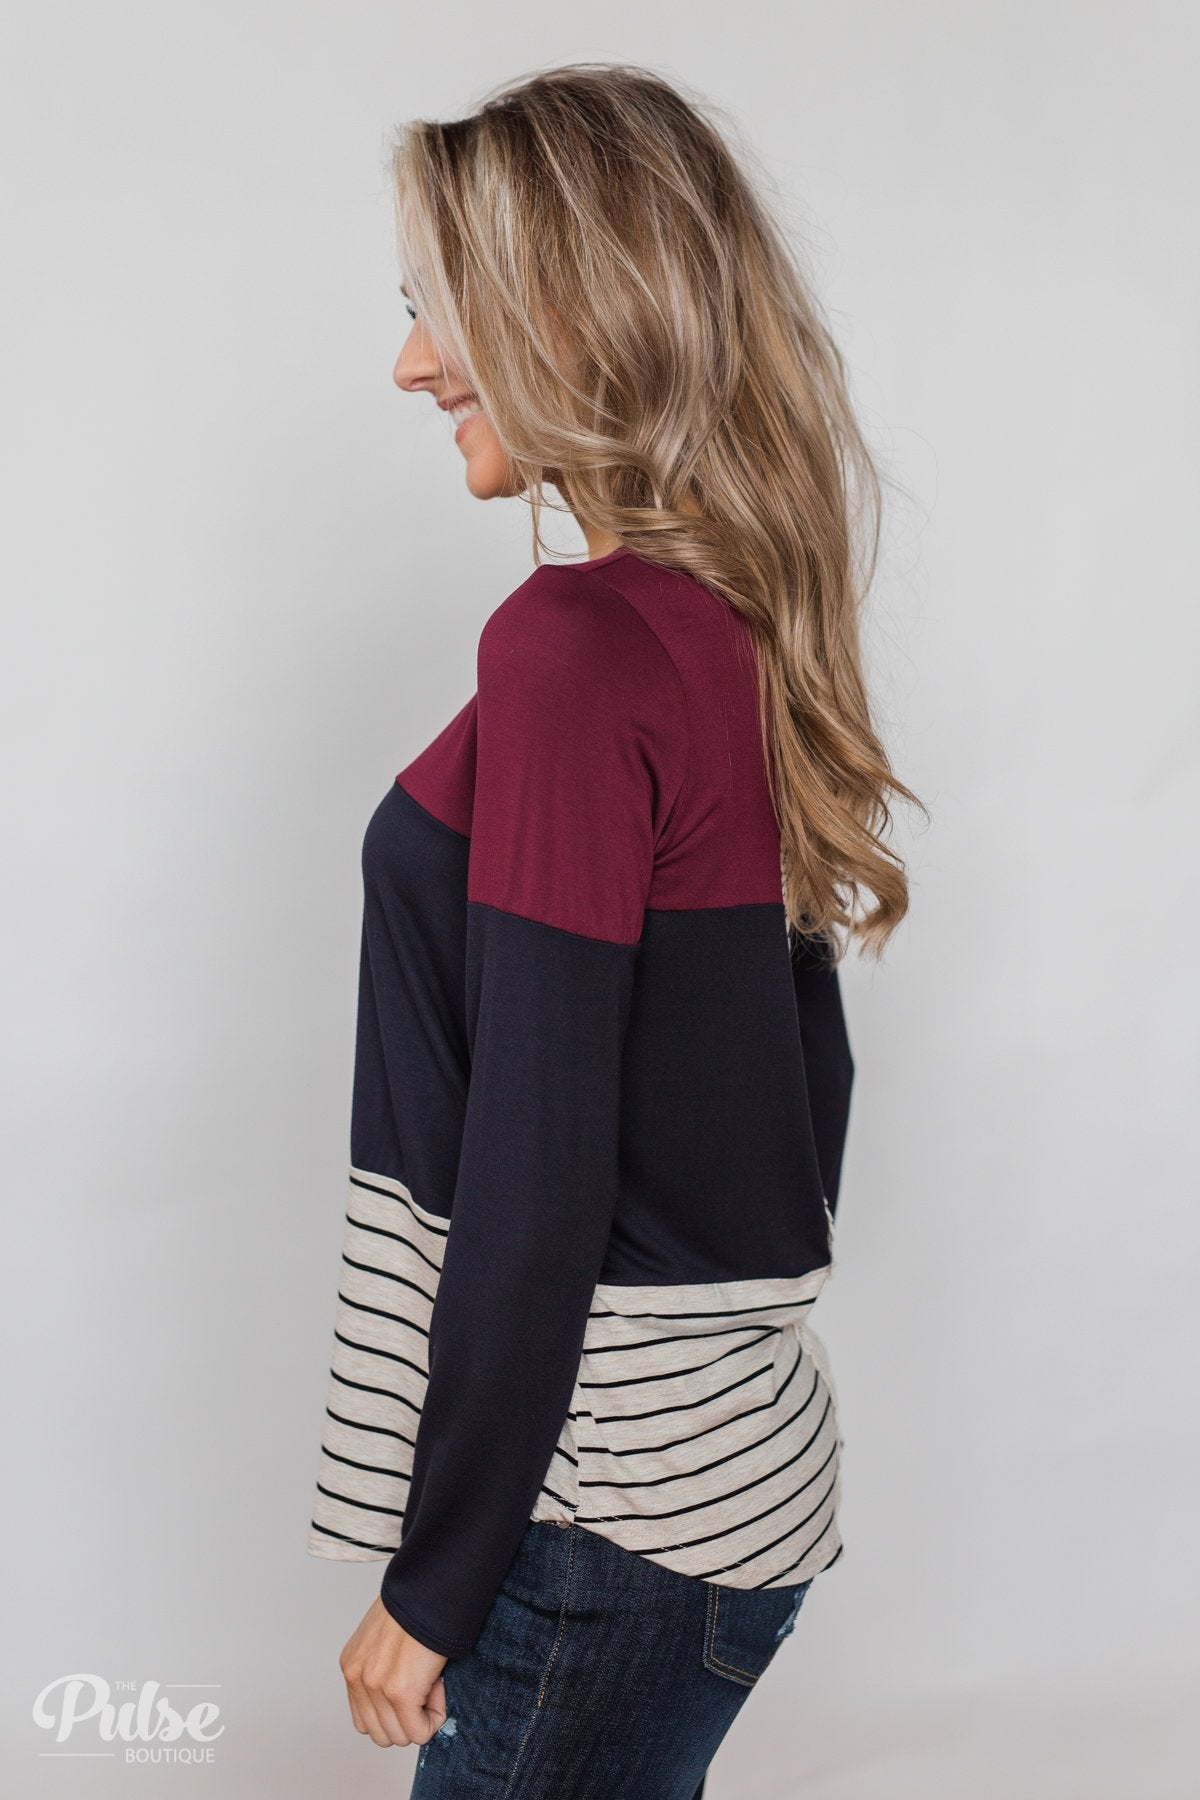 Party in the Back Lace Detail Top- Maroon & Navy